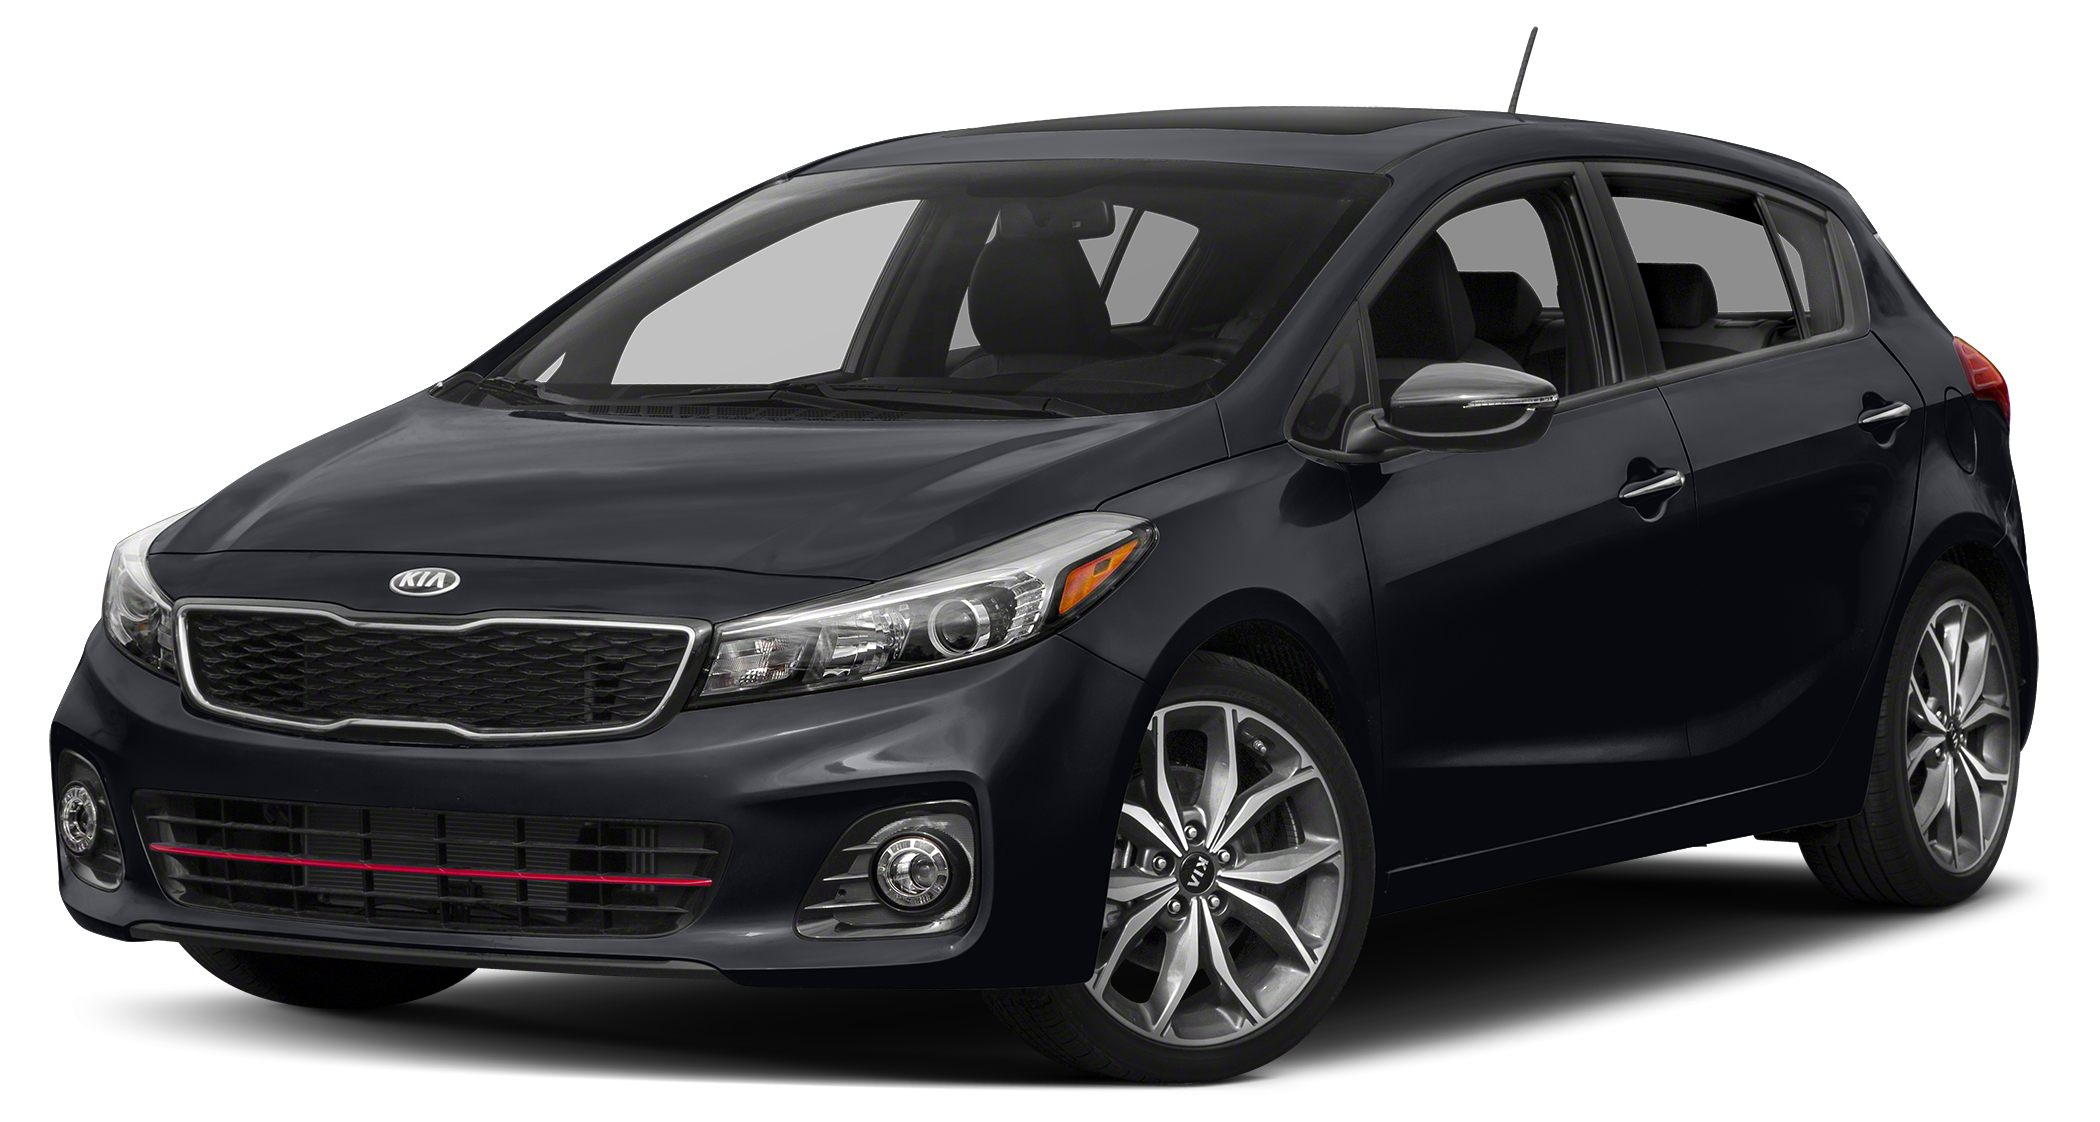 2017 Kia Forte LX The 2017 Kia Forte5 is the ultimate combination of edginess and utility -- givin